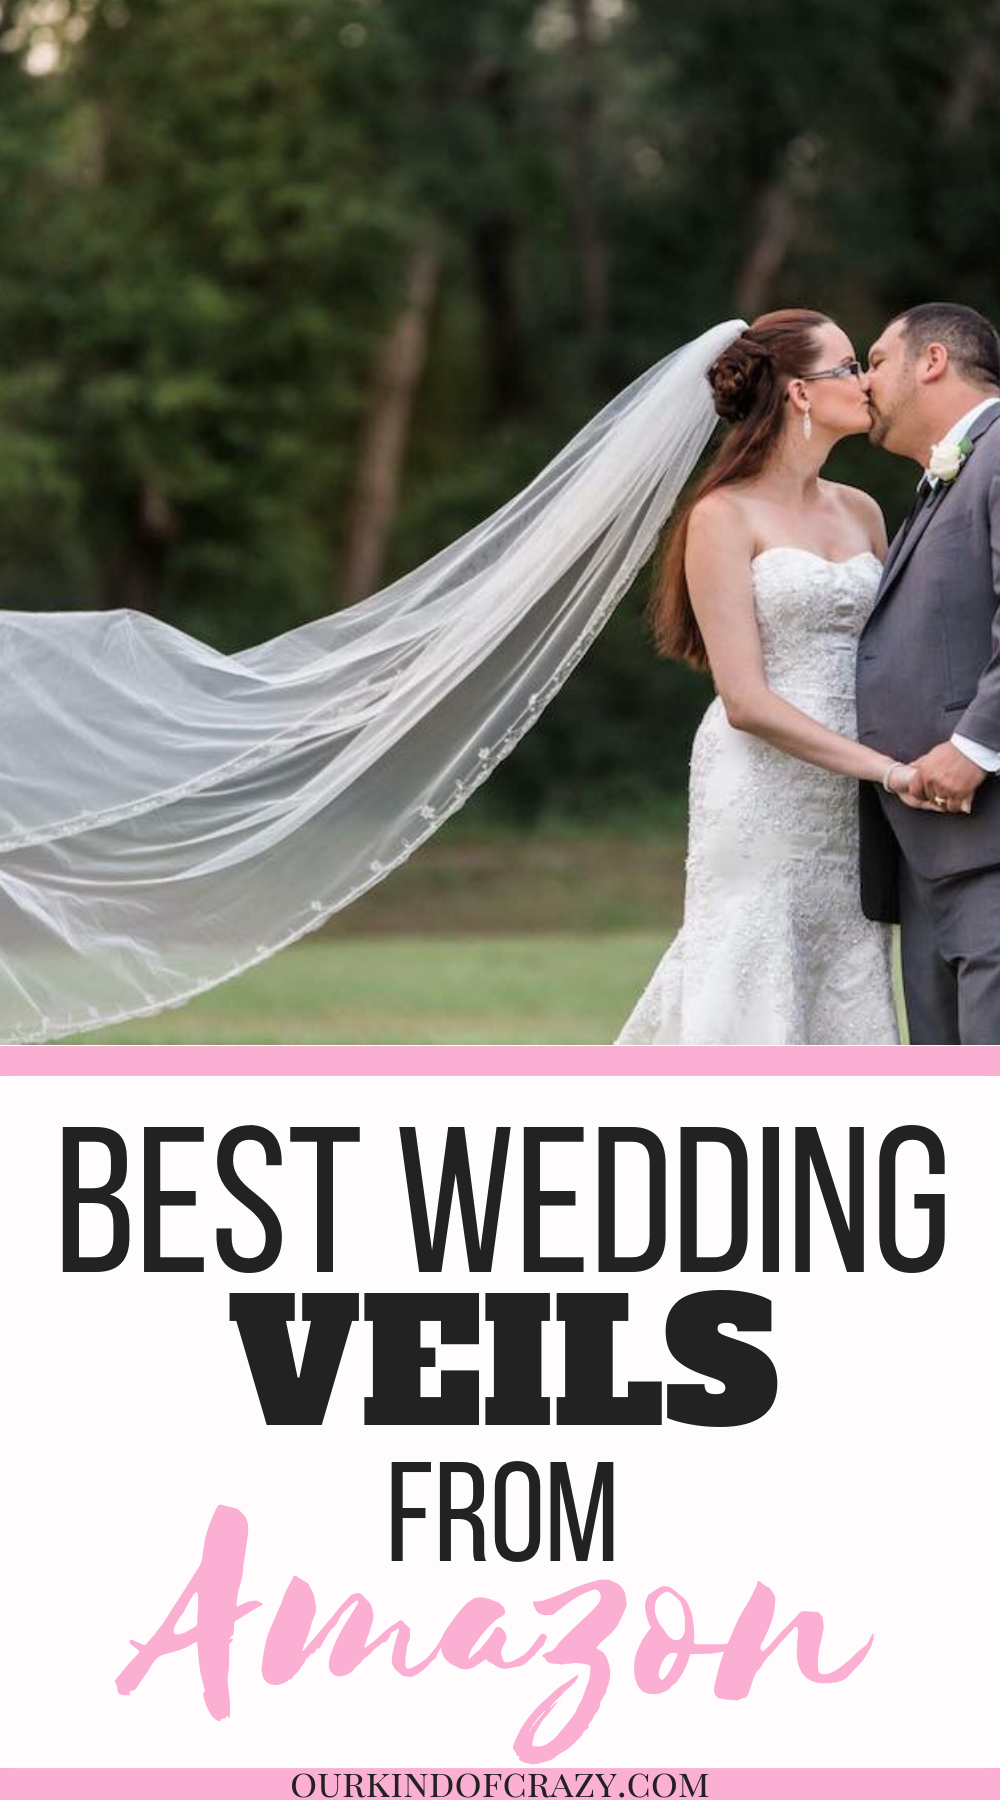 Awesome and Affordable Wedding Veils from Amazon. Long Wedding Veils, Short Wedding Veils, two tier veils or one, here are some great finds!